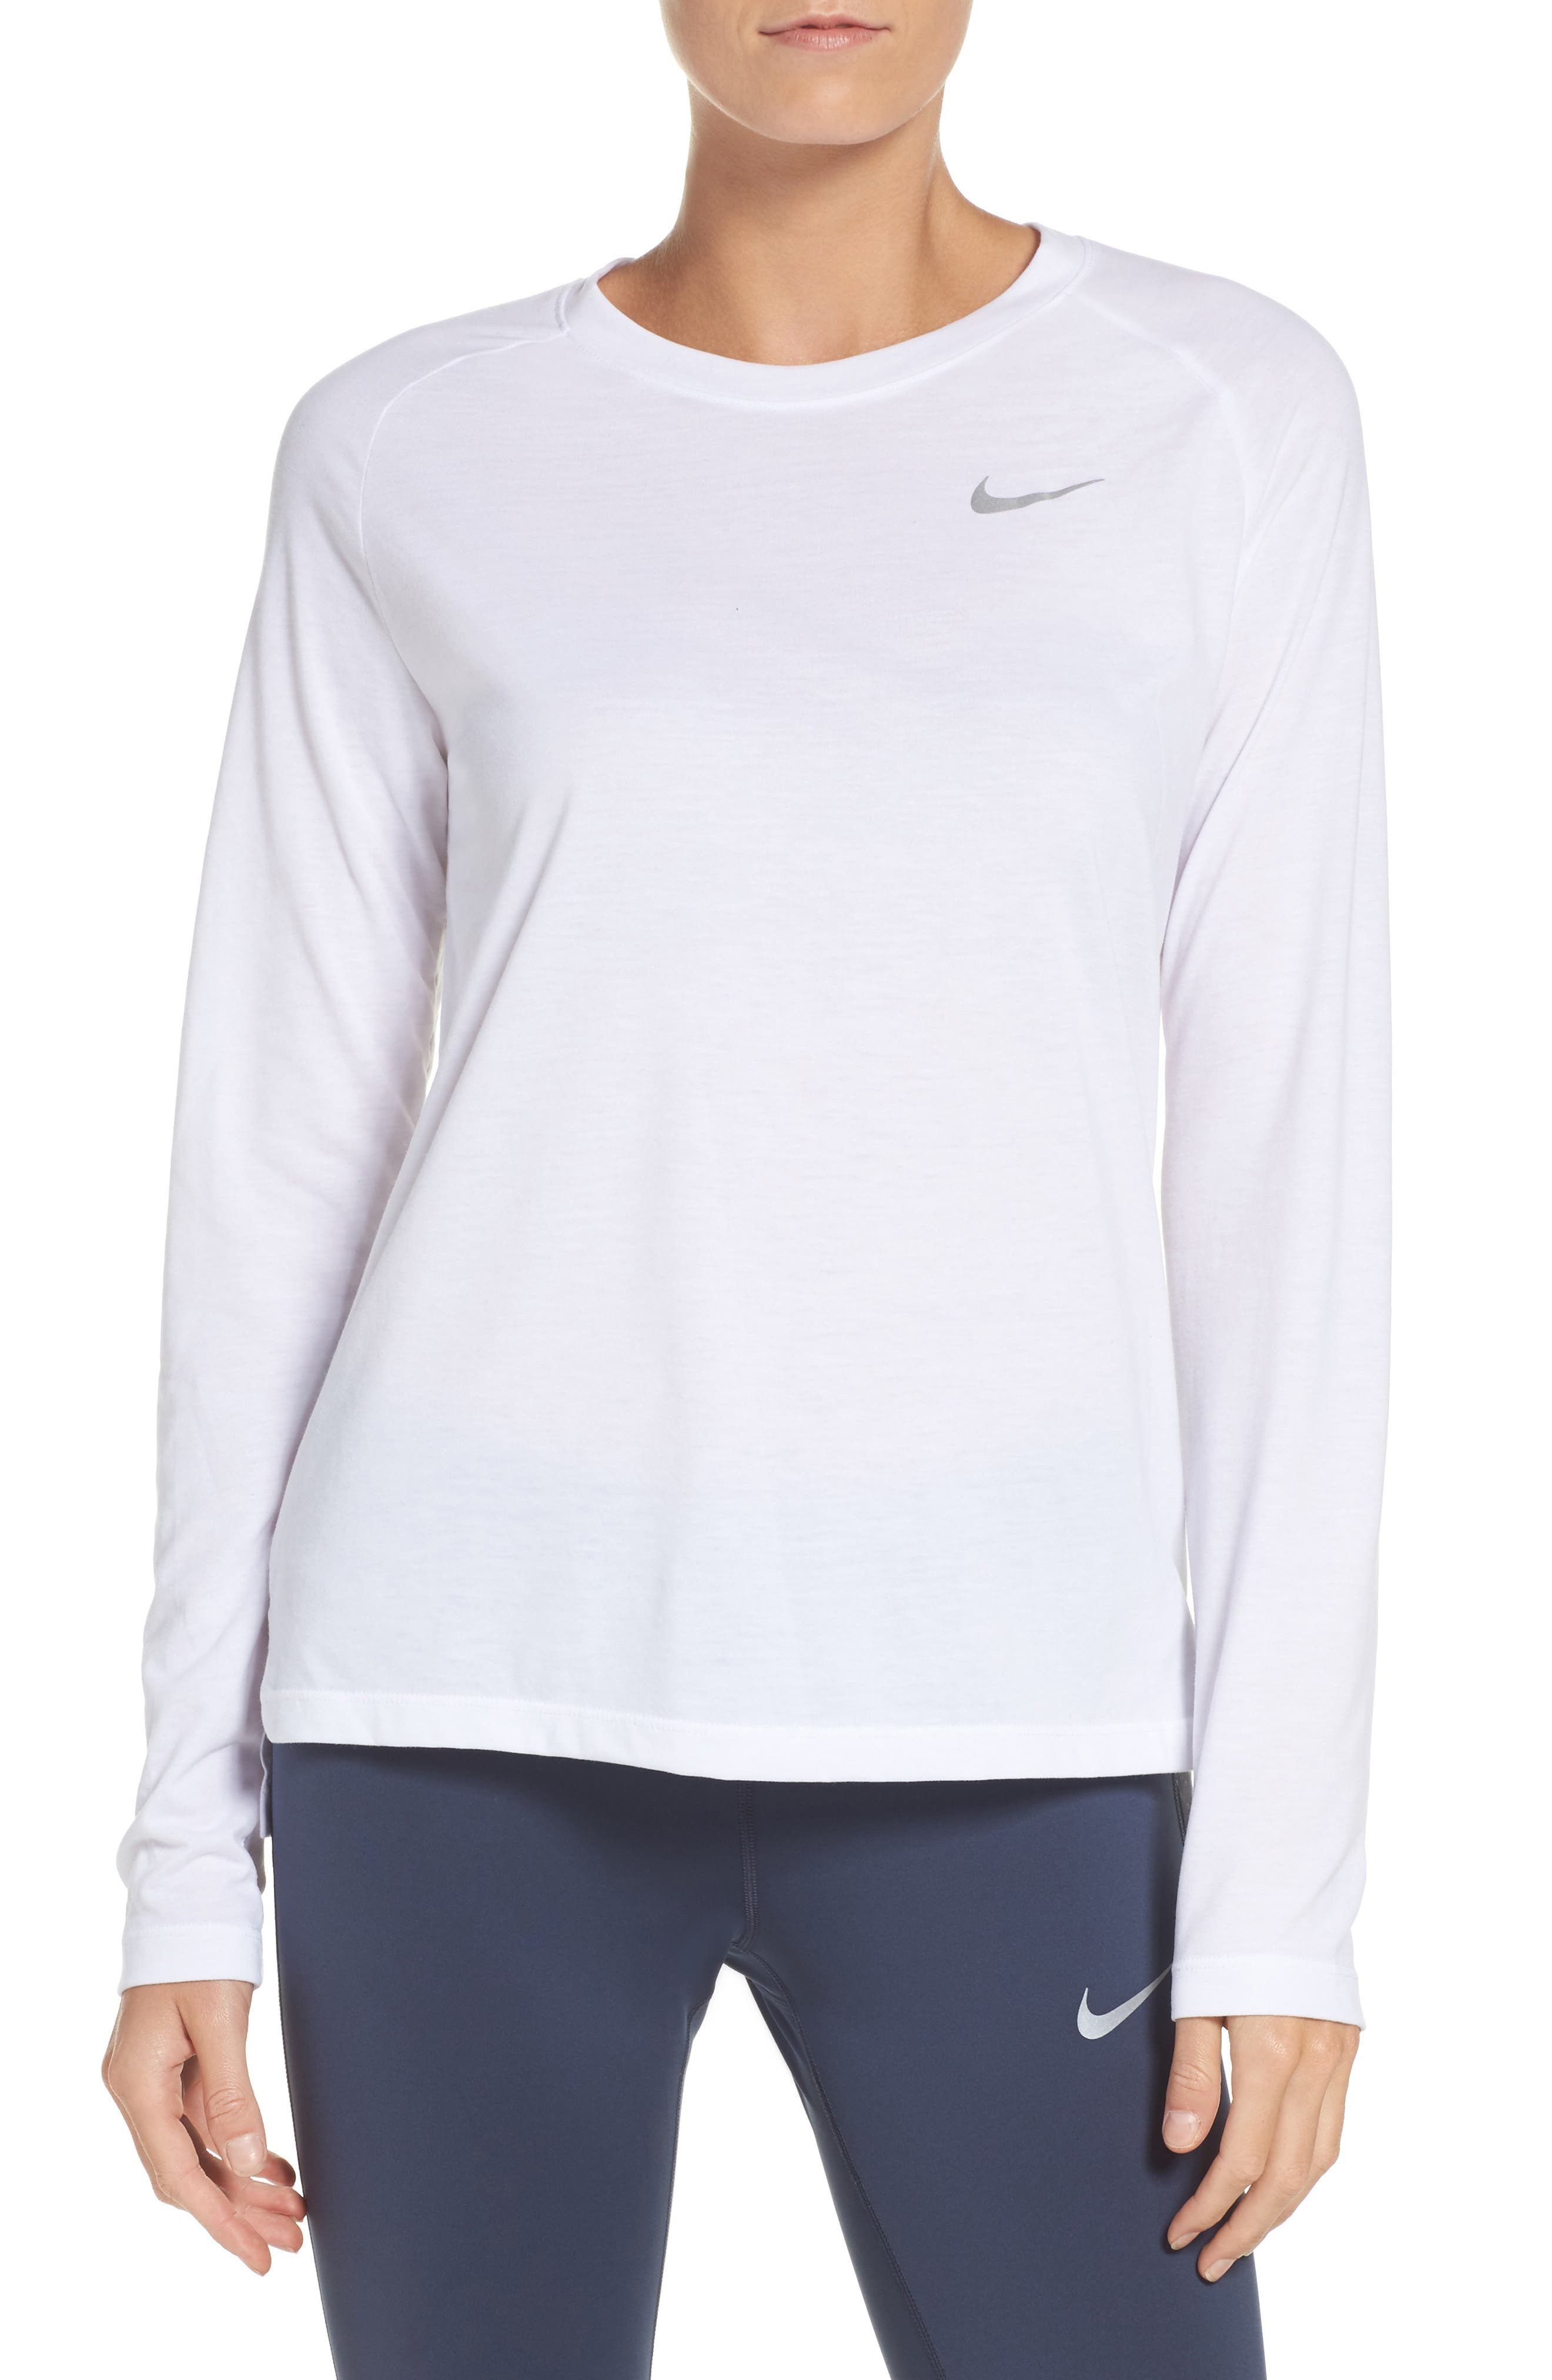 Breathe Tailwind Running Top,                             Main thumbnail 1, color,                             100